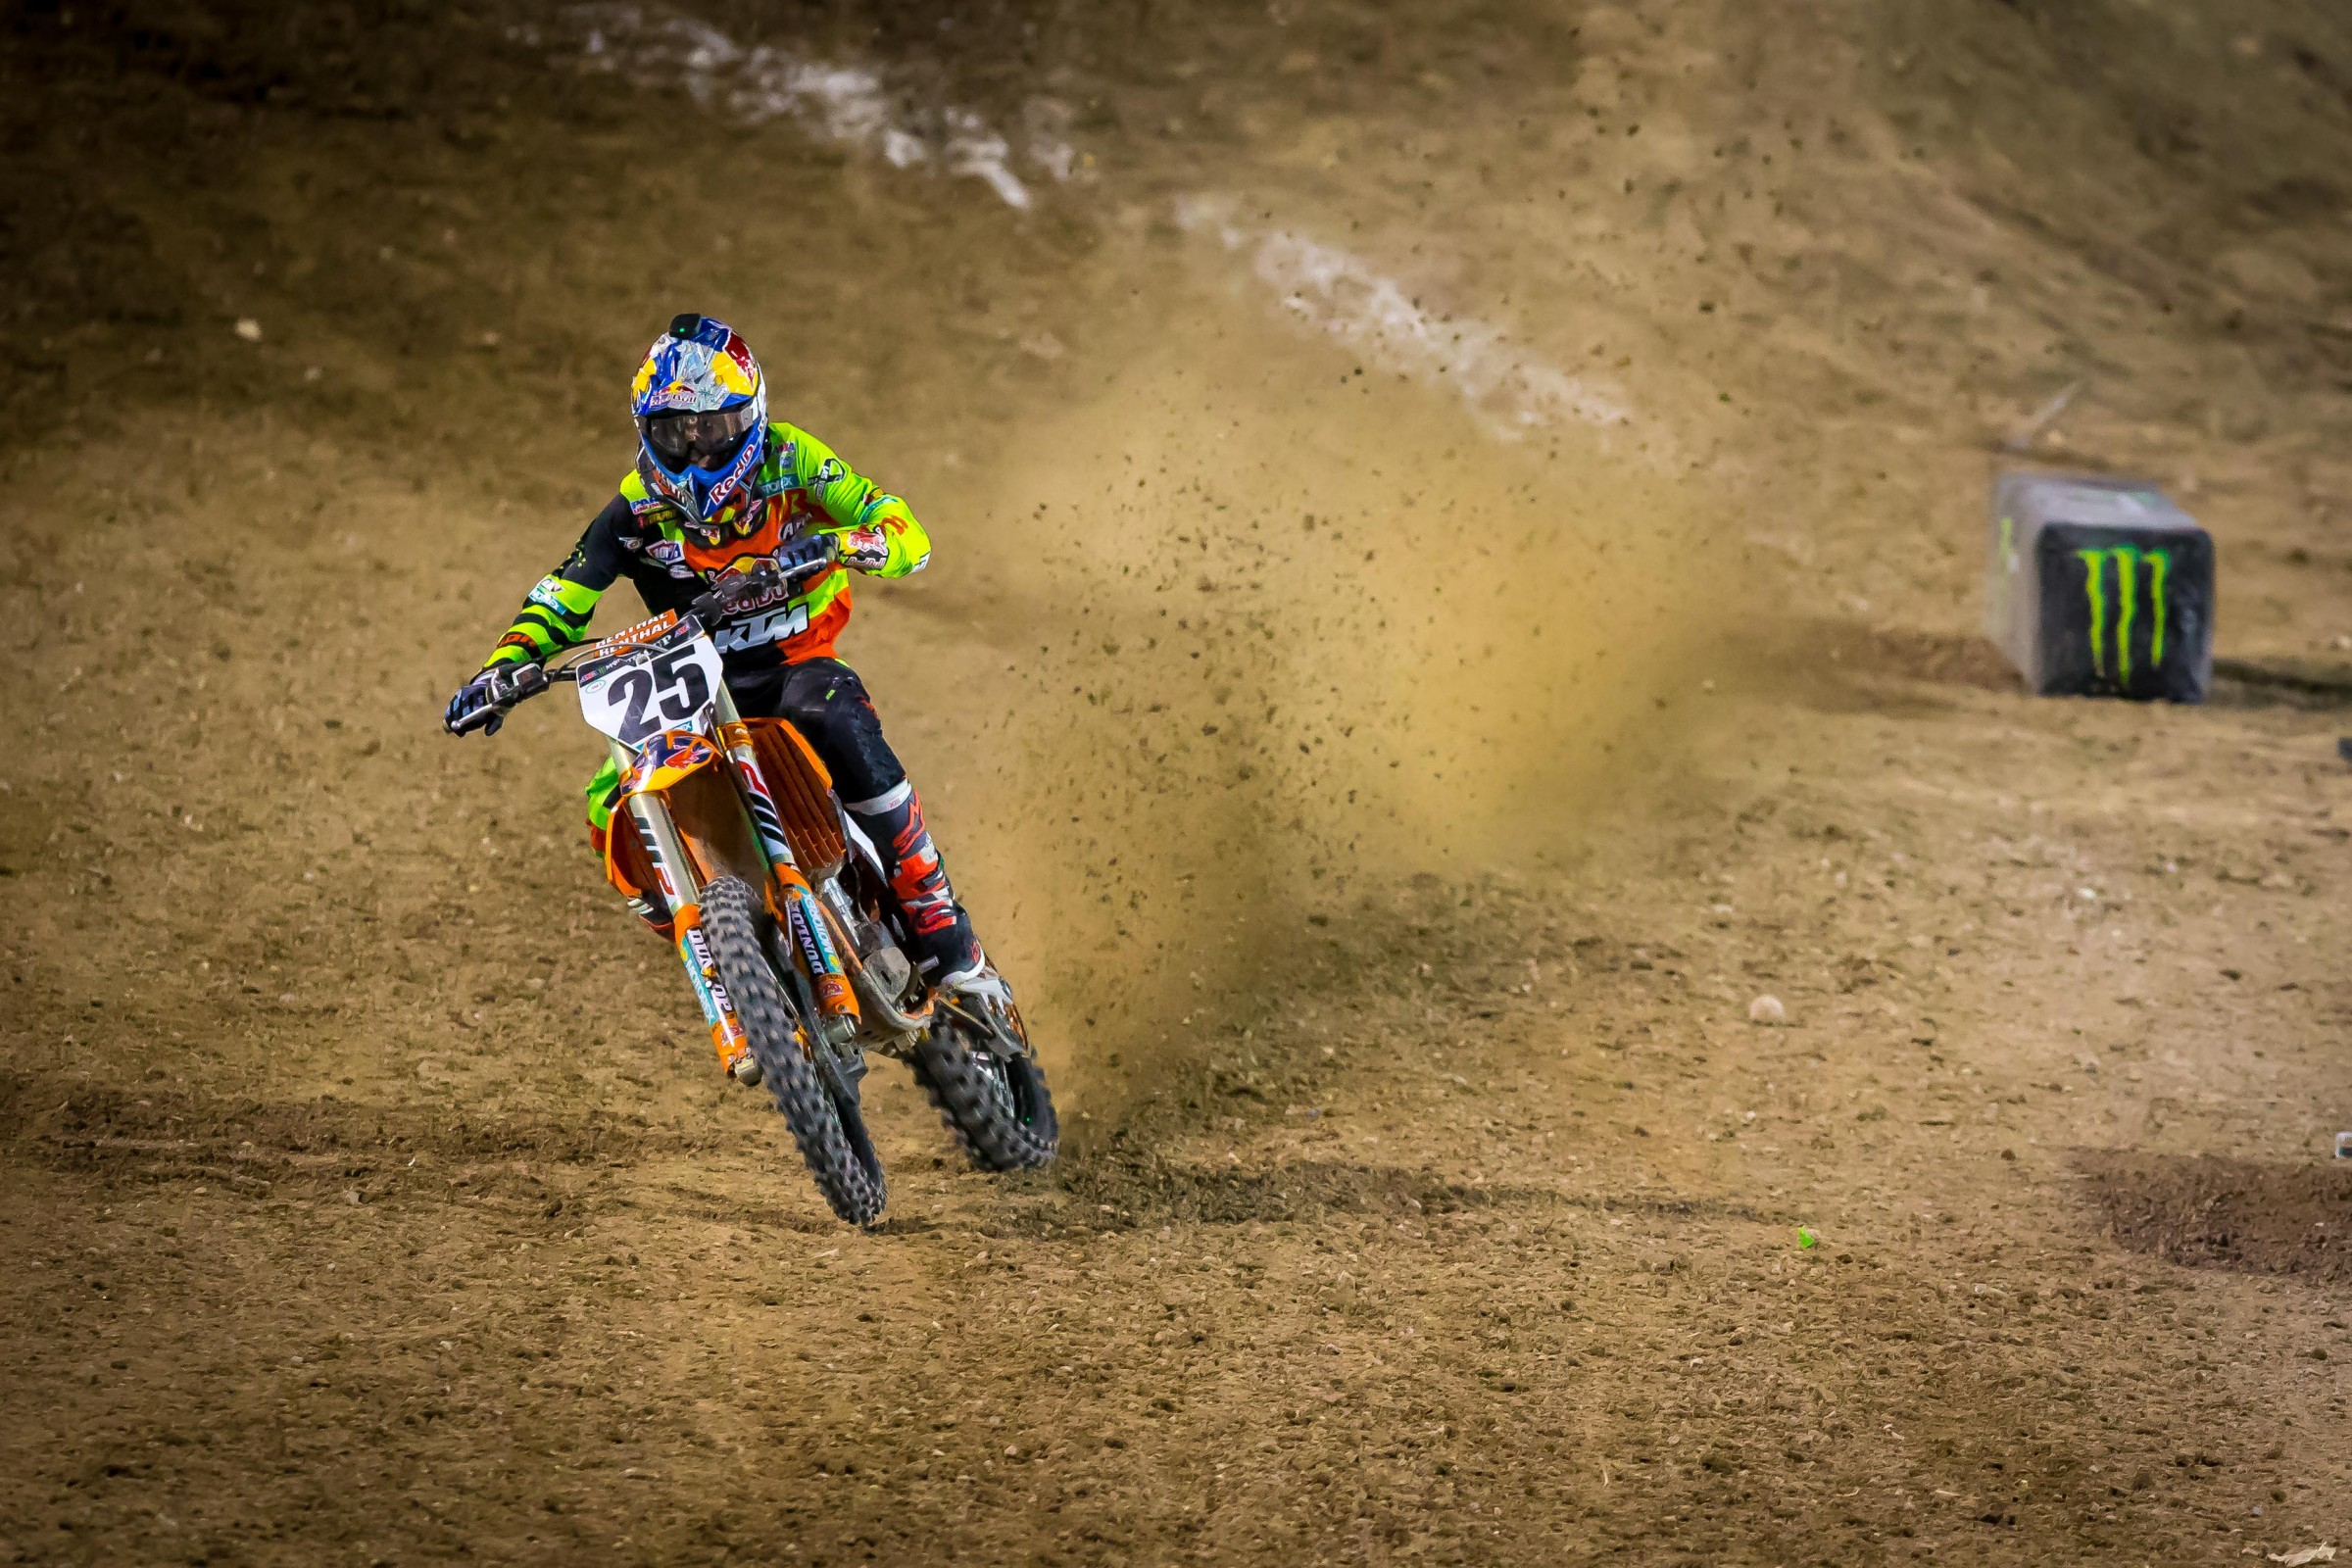 Musquin is one of the favorites to capture the Monster Energy Supercross title in 2018.